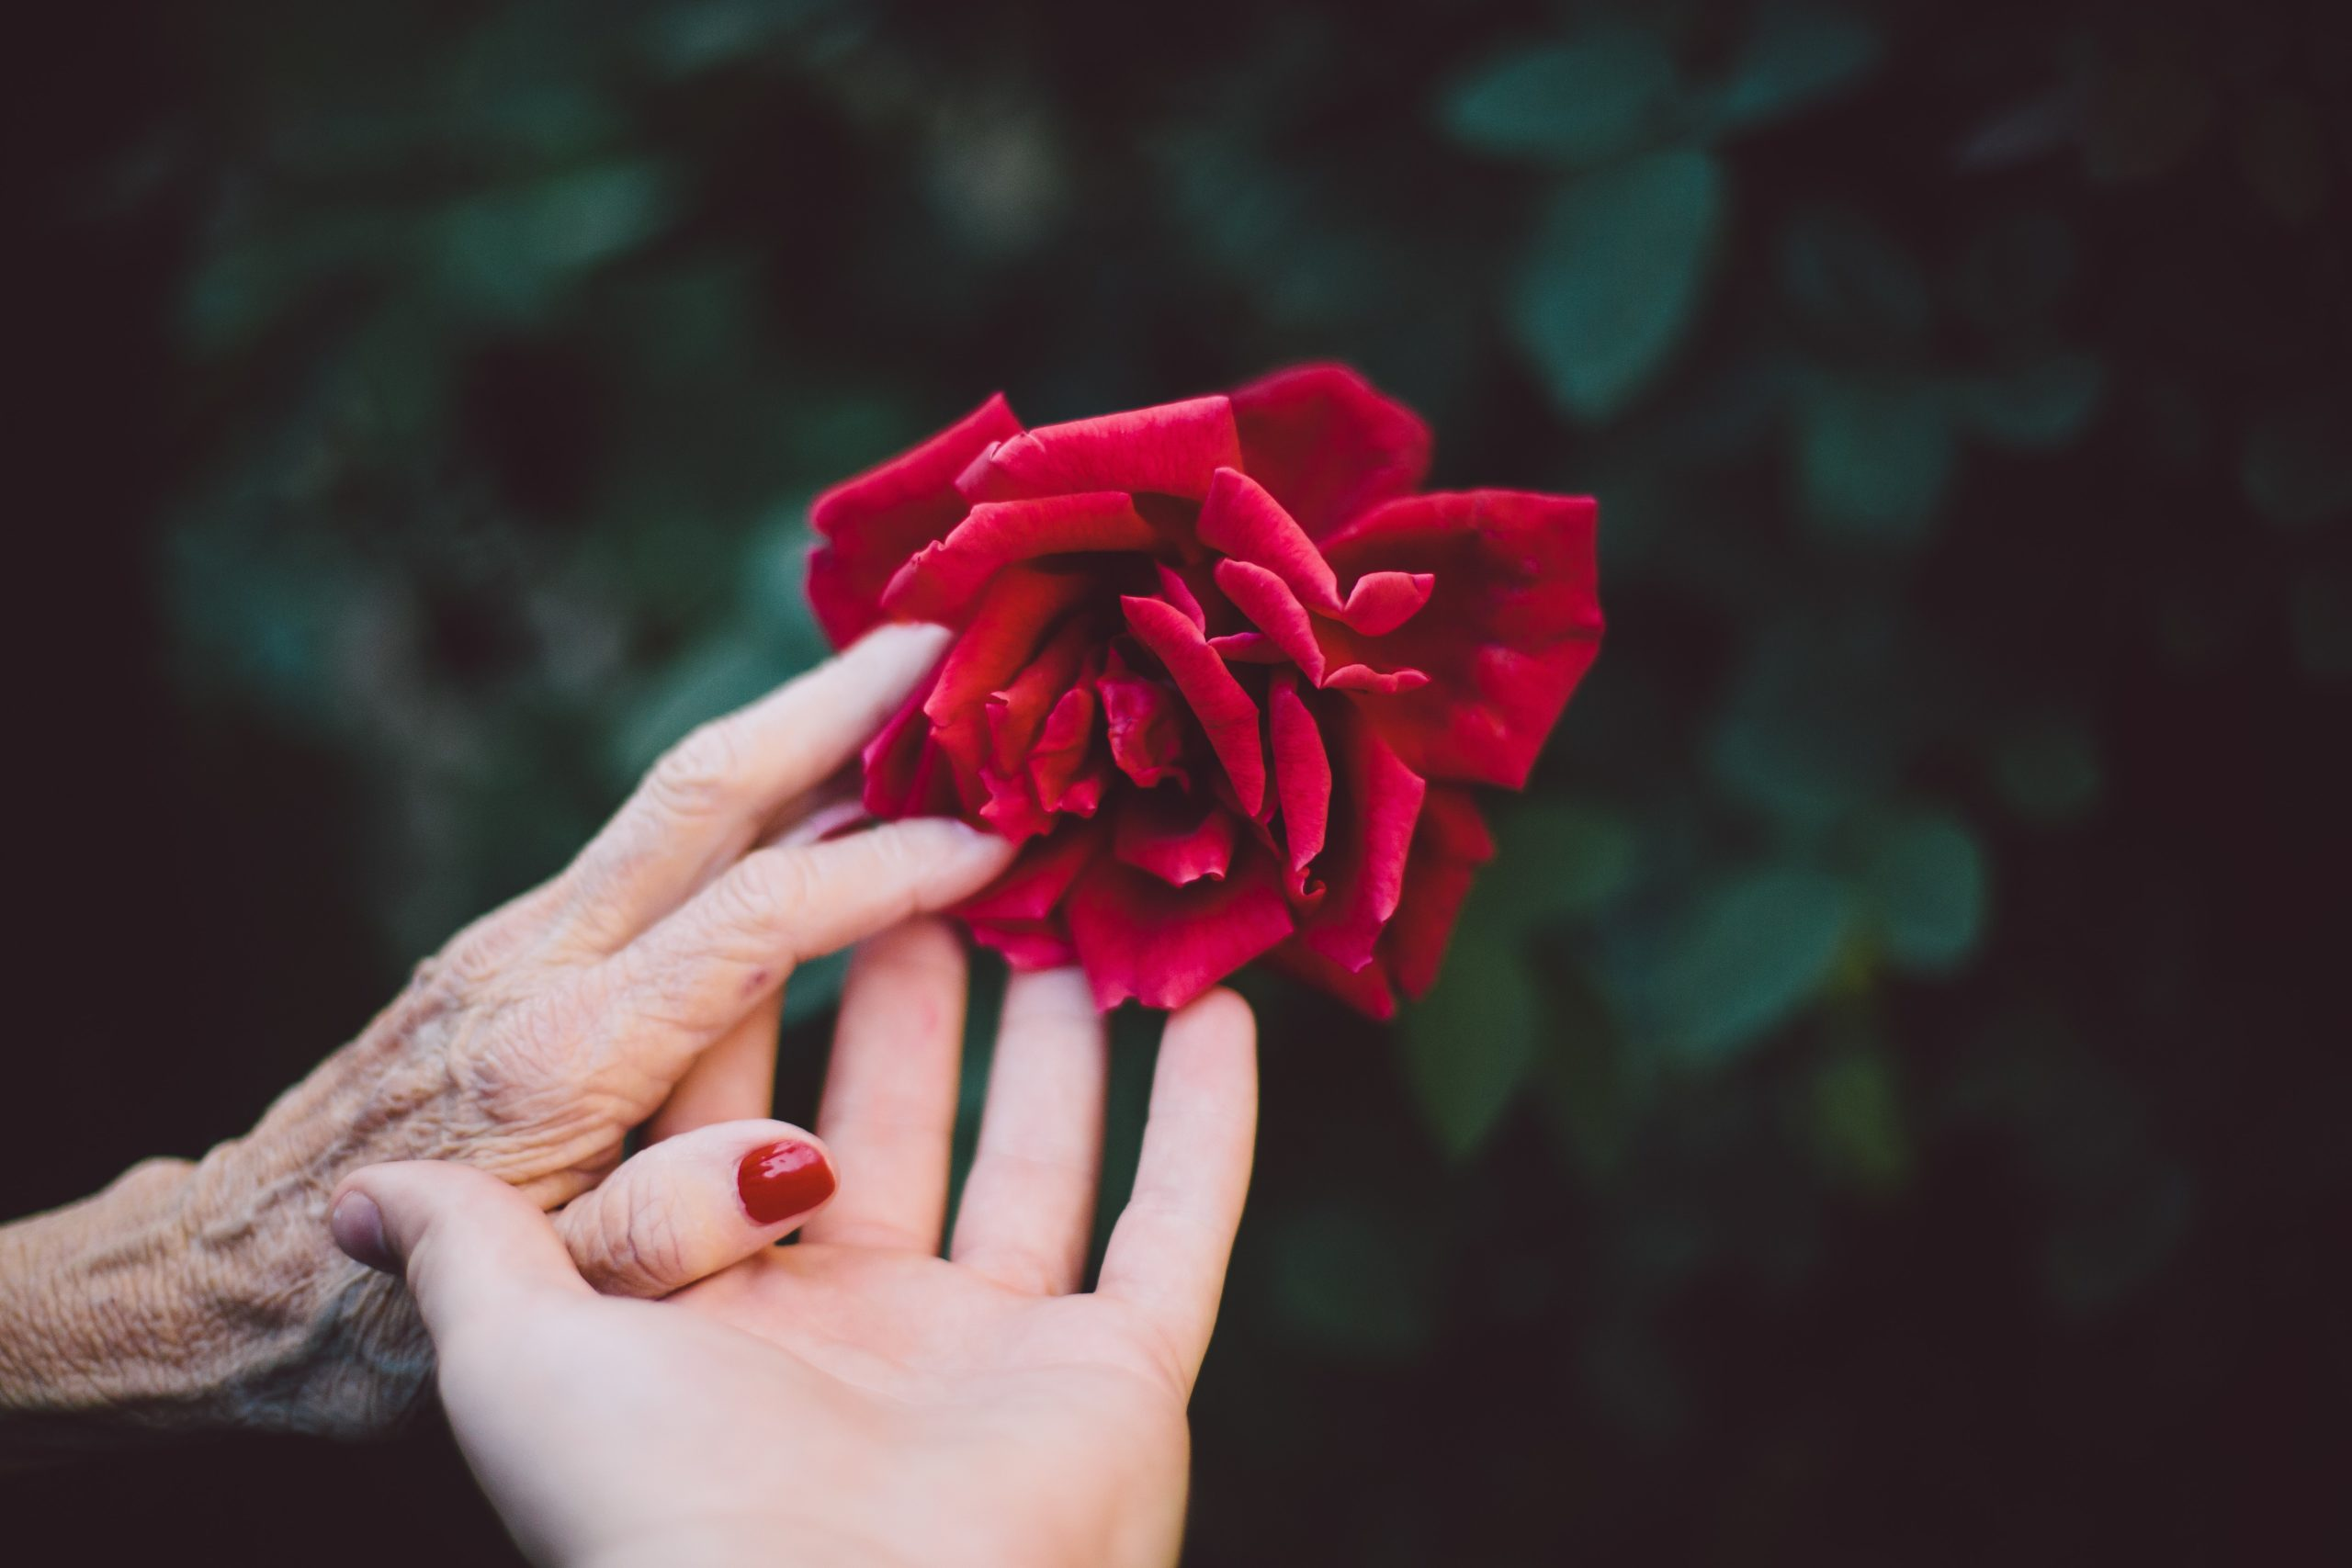 an elderly hand and a young hand with a rose